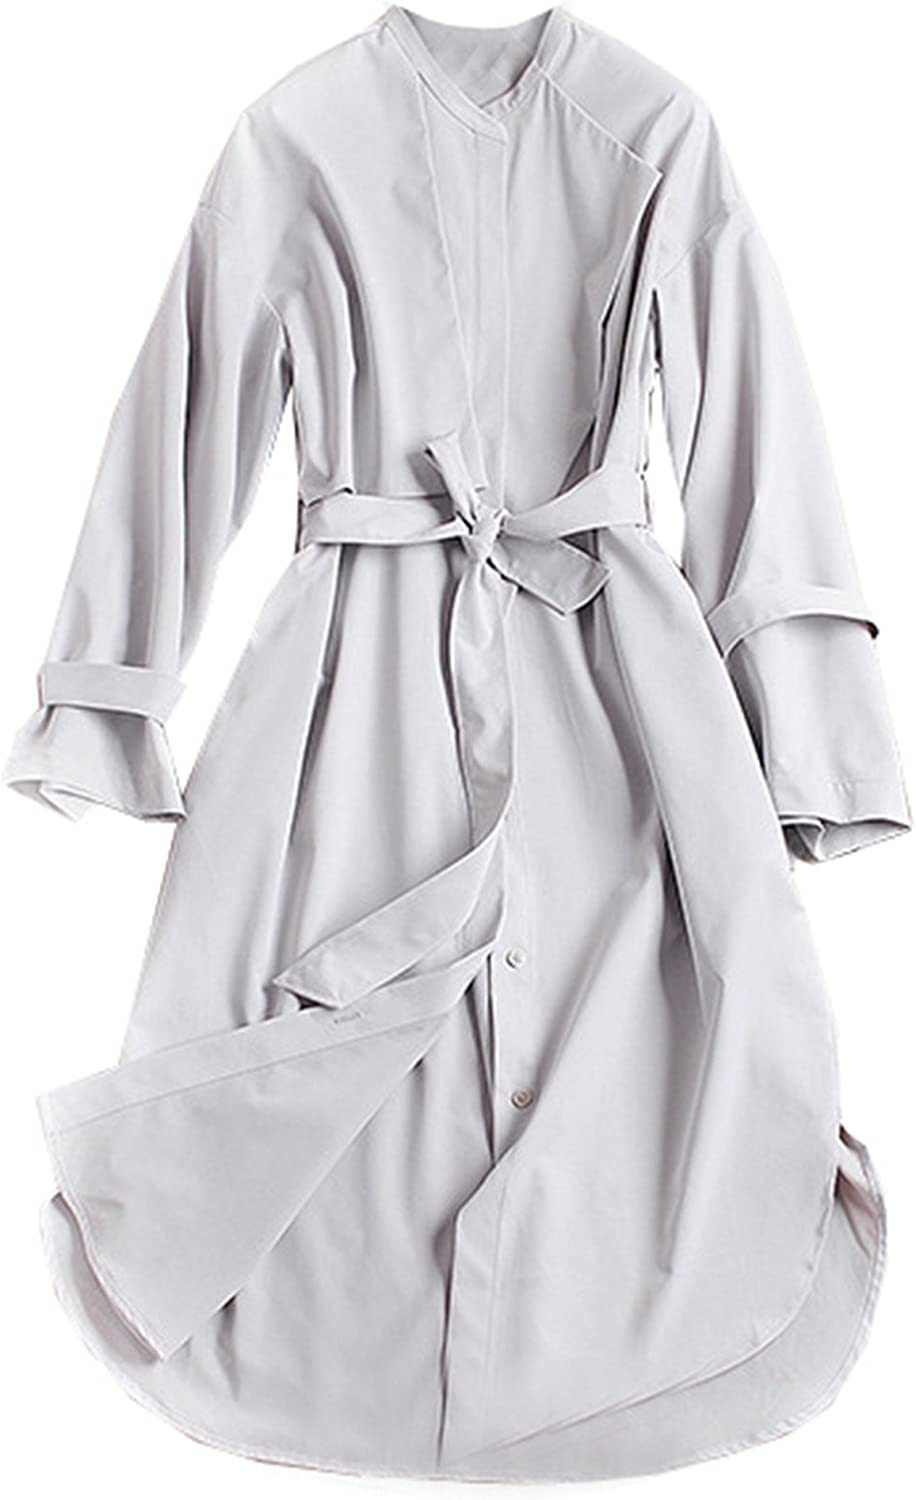 Allonly Women's Solid color Single Breasted Round Neck Trench Coat with Tie Waist